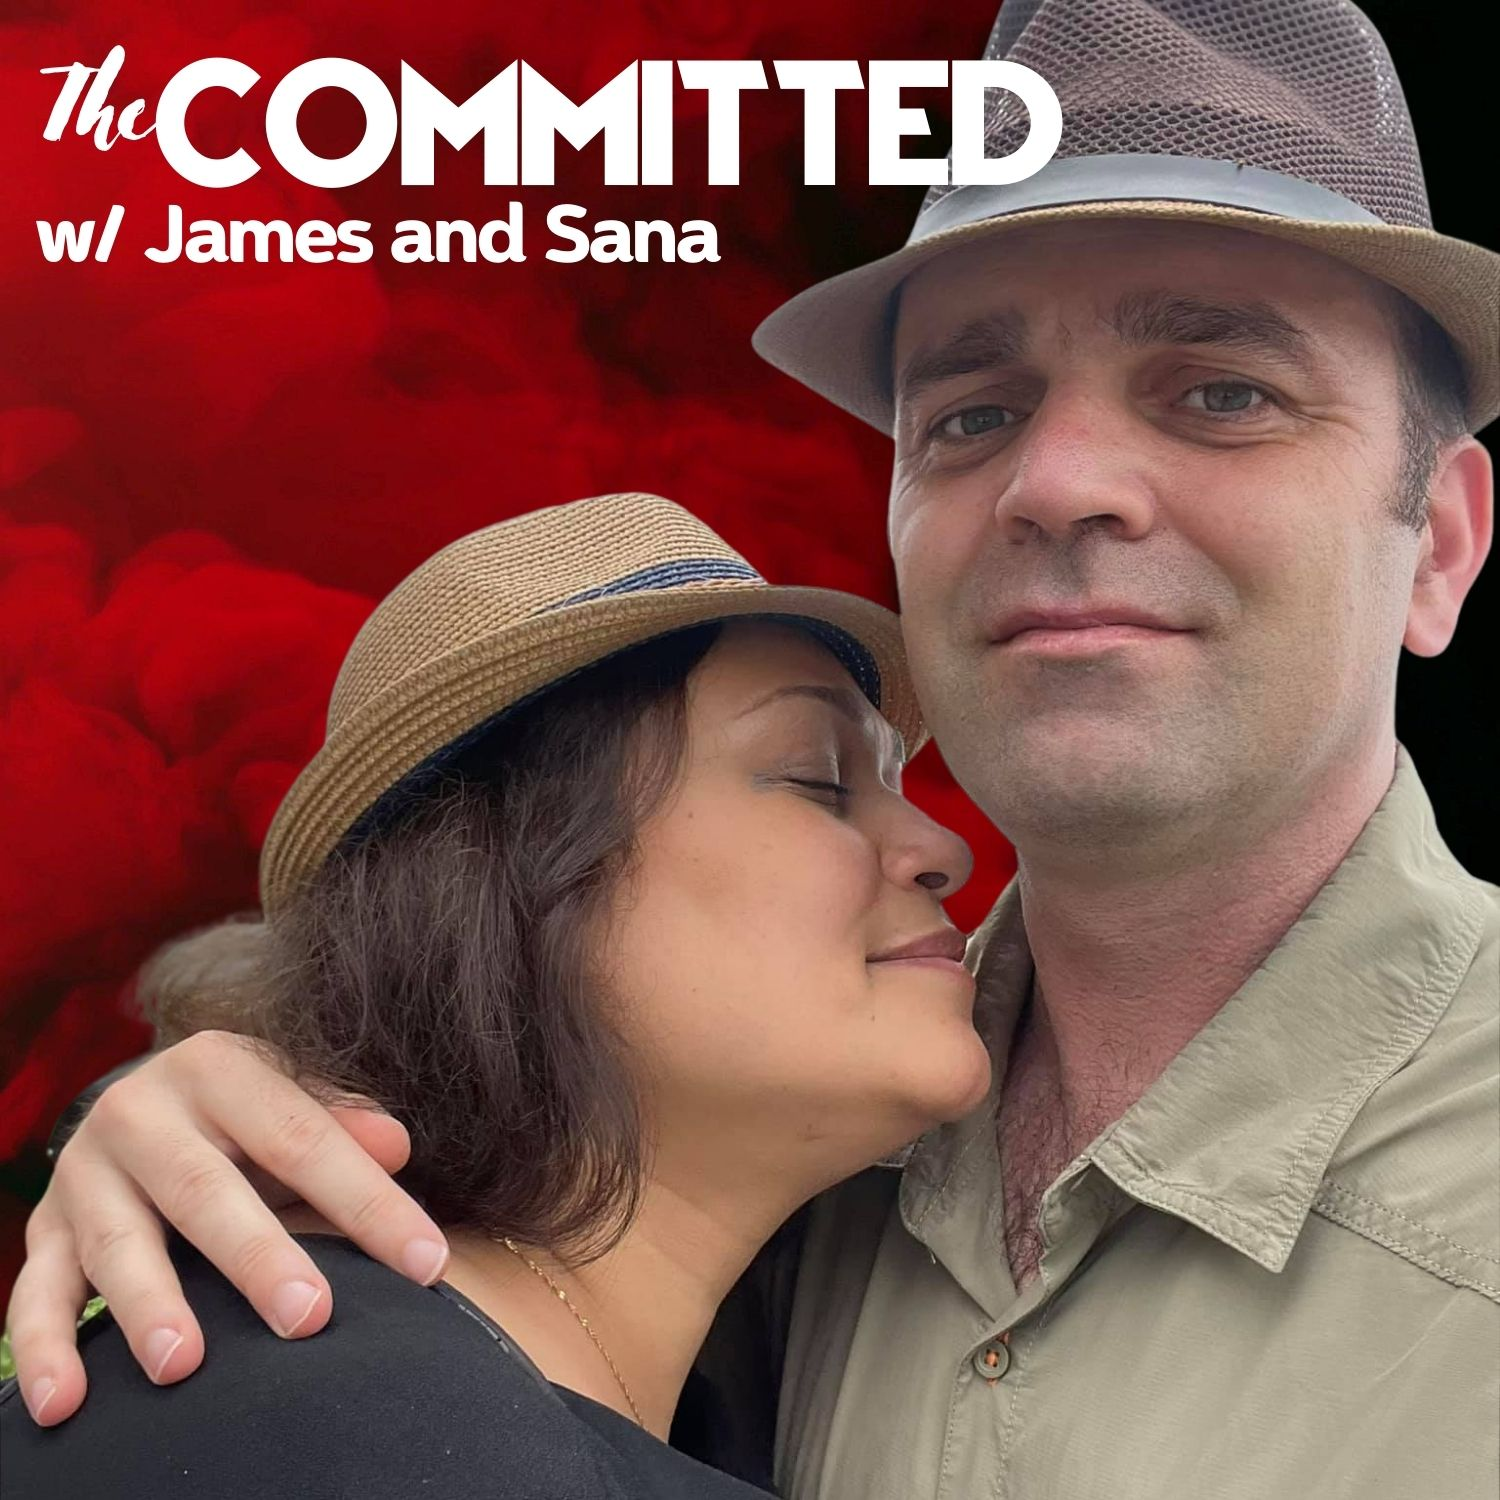 The Committed with James and Sana